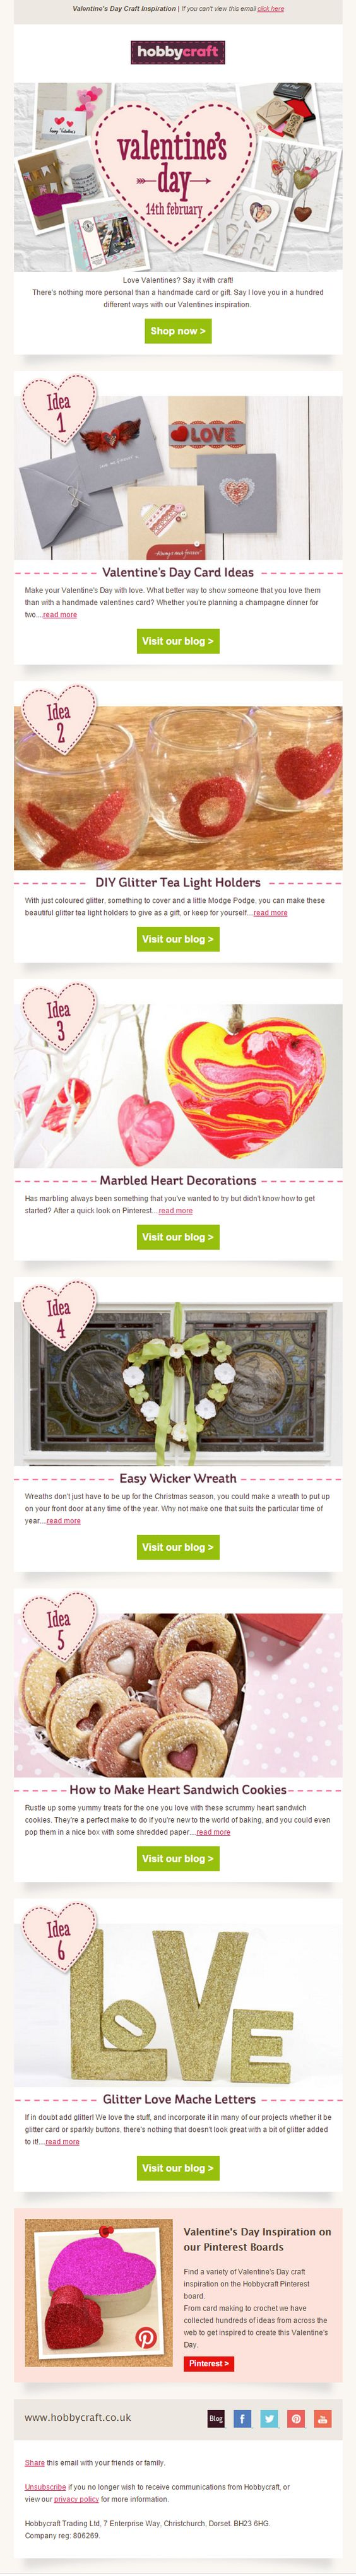 6 Ways To Show Your Customers You Love Them On Valentine S Day